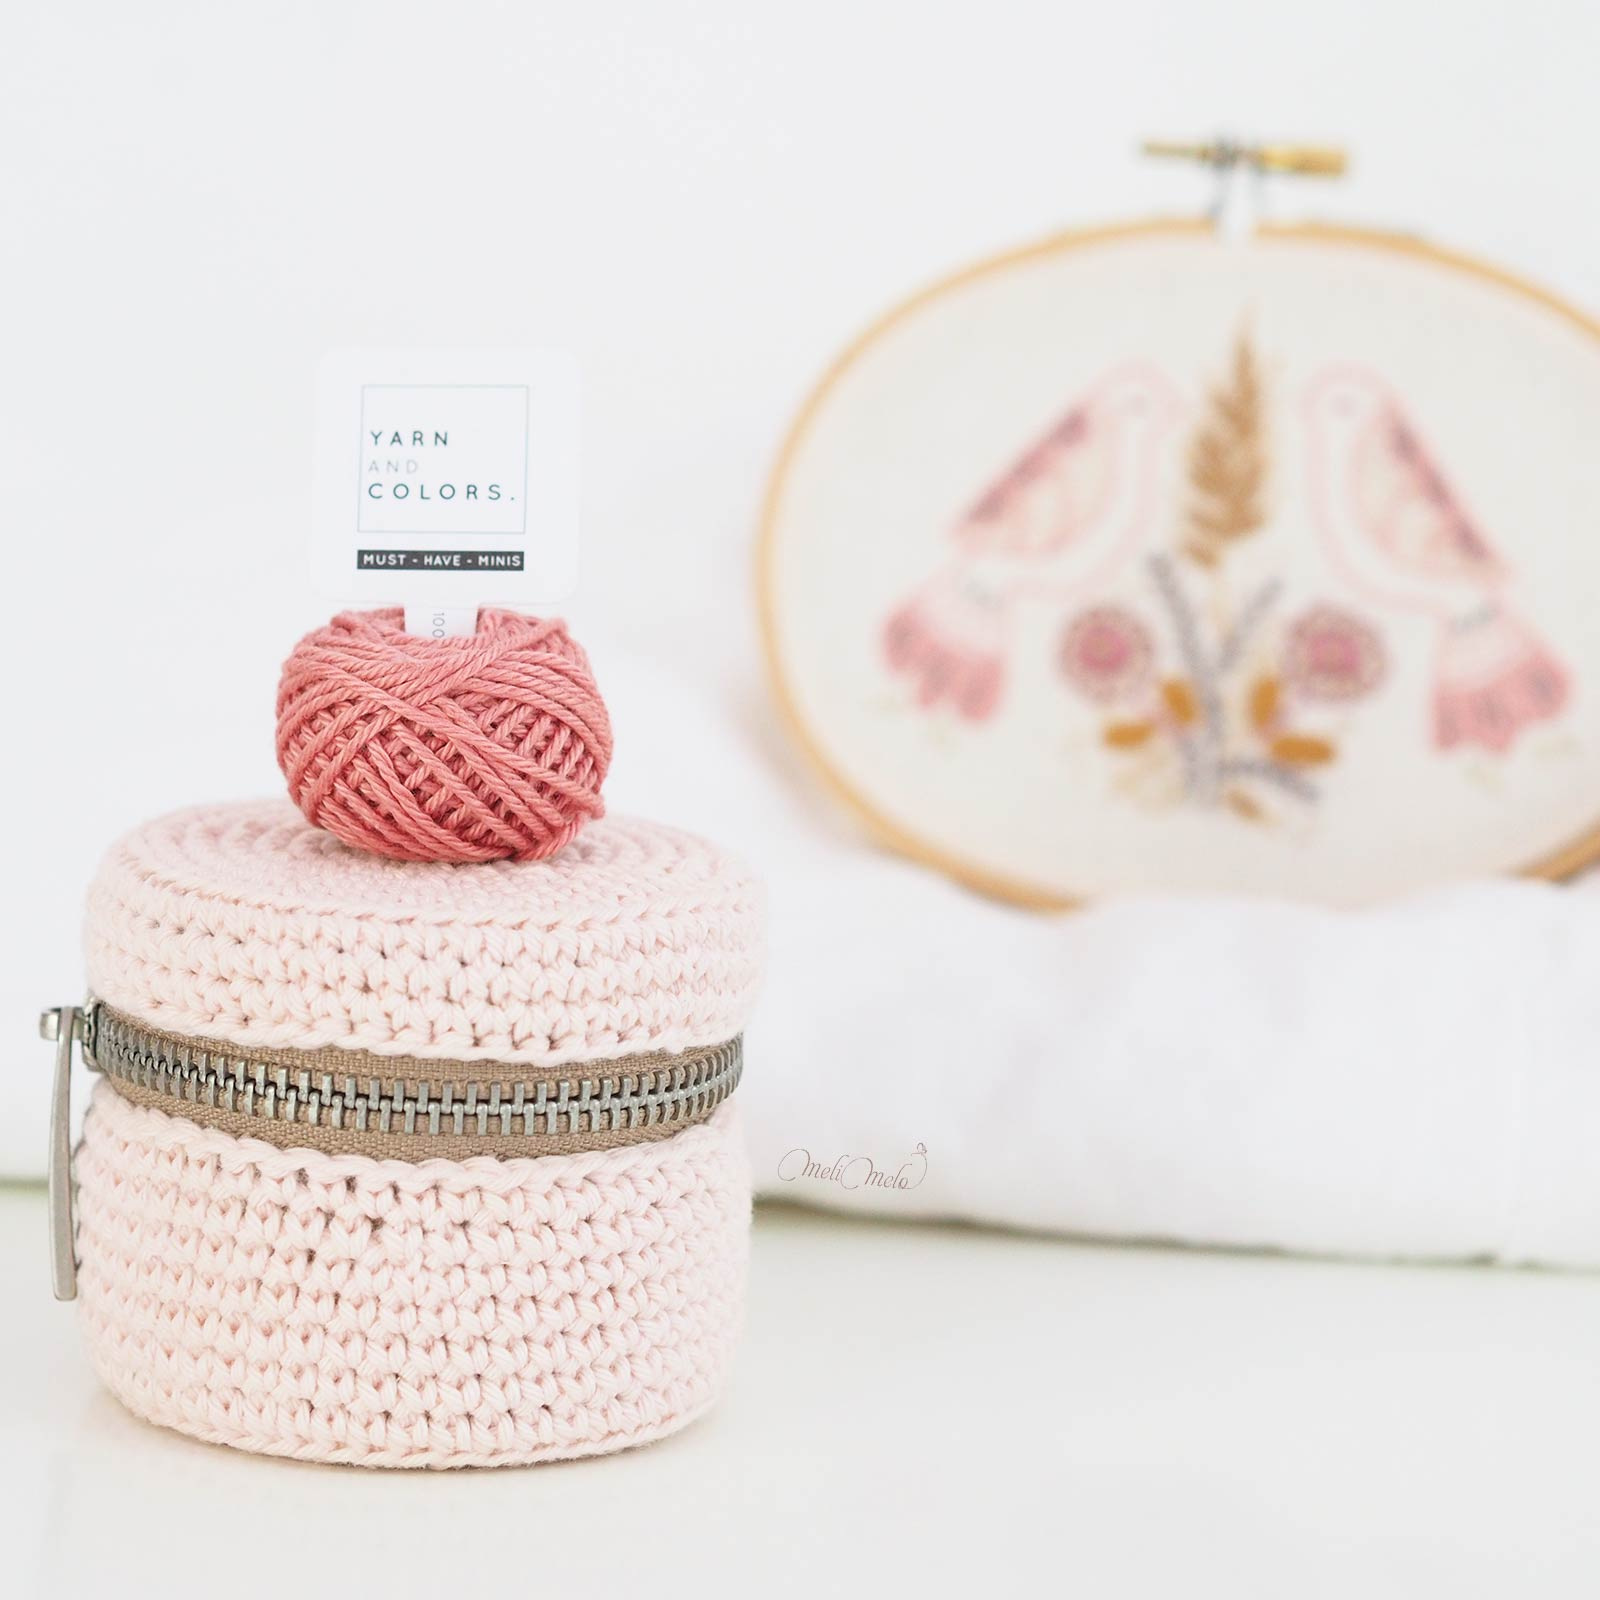 boite-rose-reve-maquillage-crochet-coton-upcycling-ricorumi-must-have-minis-laboutiquedemelimelo